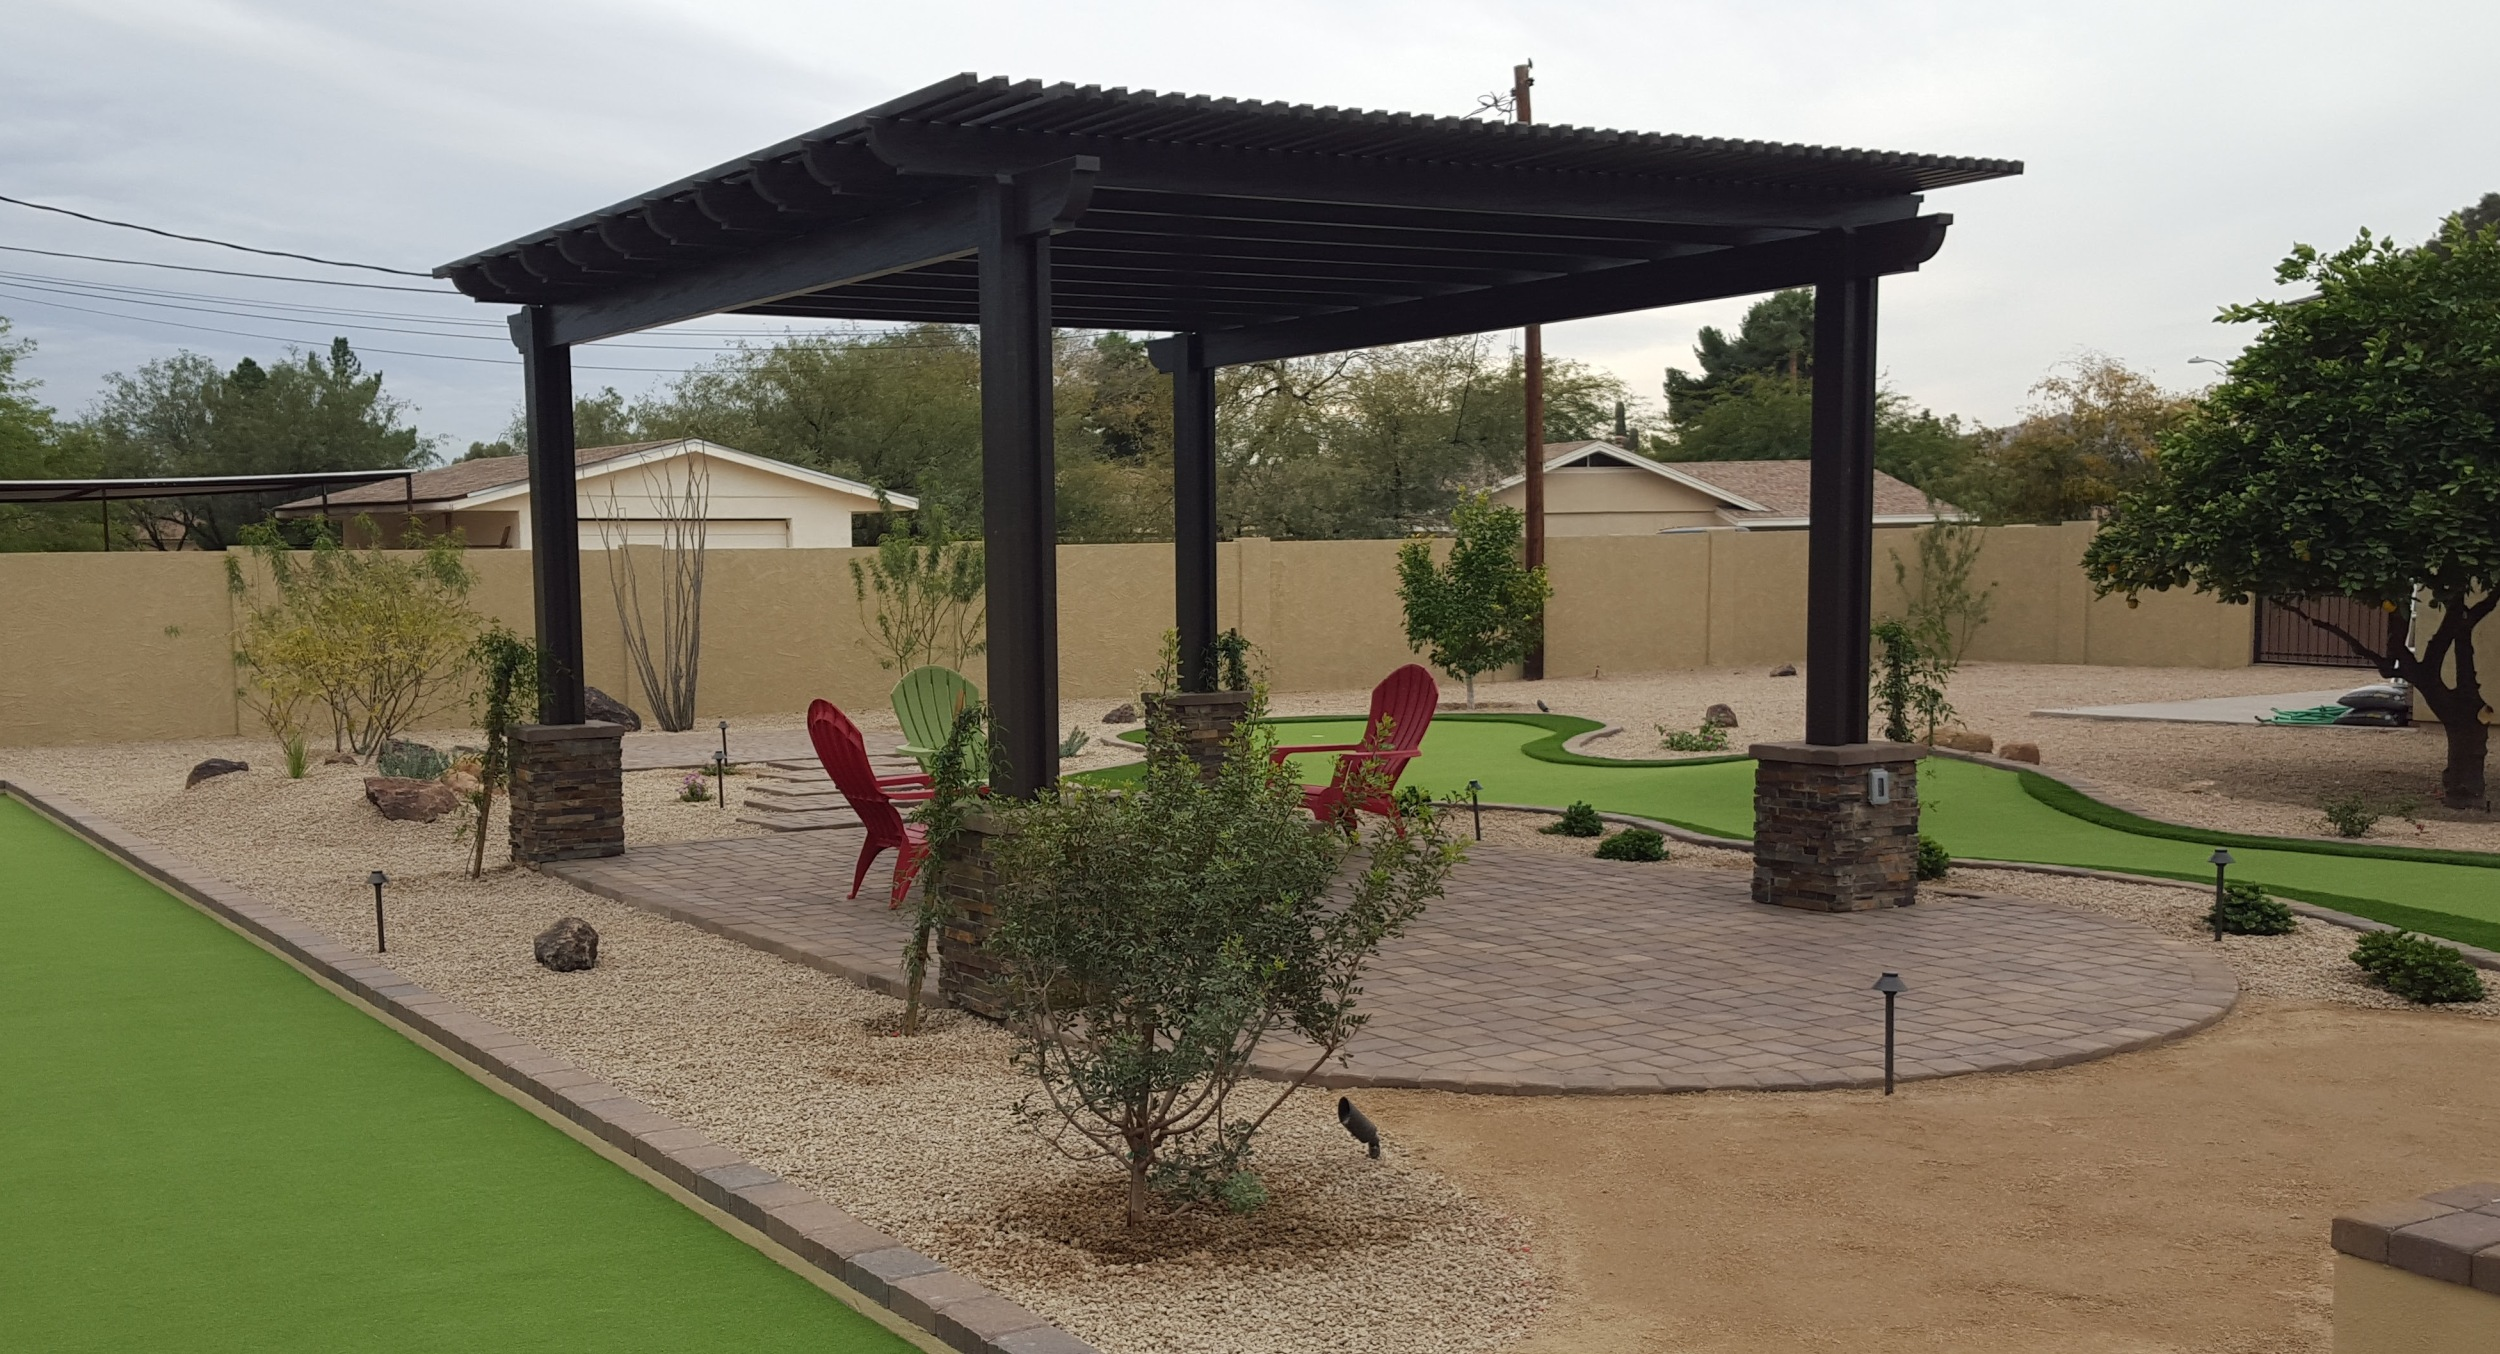 Phoenix-Scottsdale landscapers you can rely on for high quality installation, like this putting green and fire pit under a shade structure.